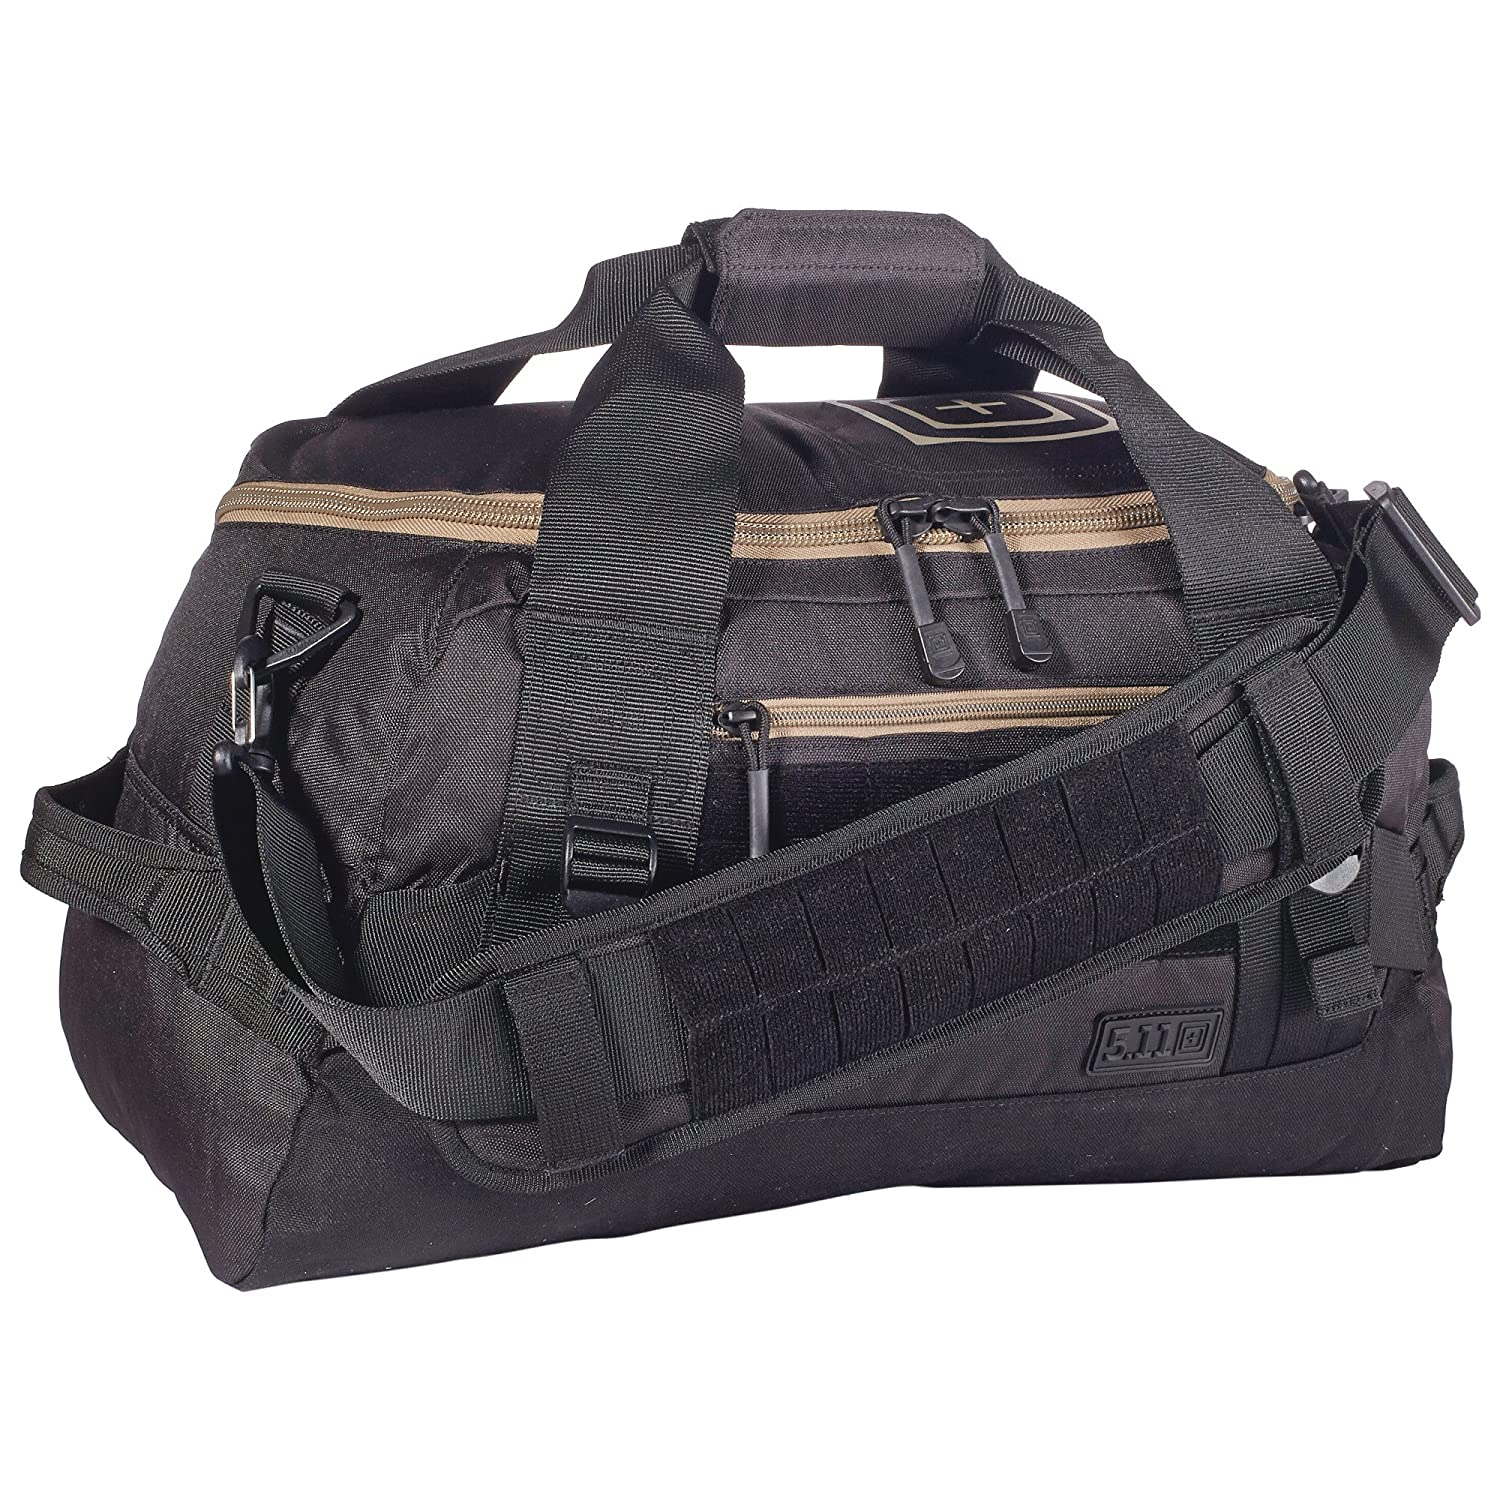 5.11 Tactical Series NBT Mike Duffle Bag, 10 x 19 x 10-Inch, Black RSR Group Inc 56183